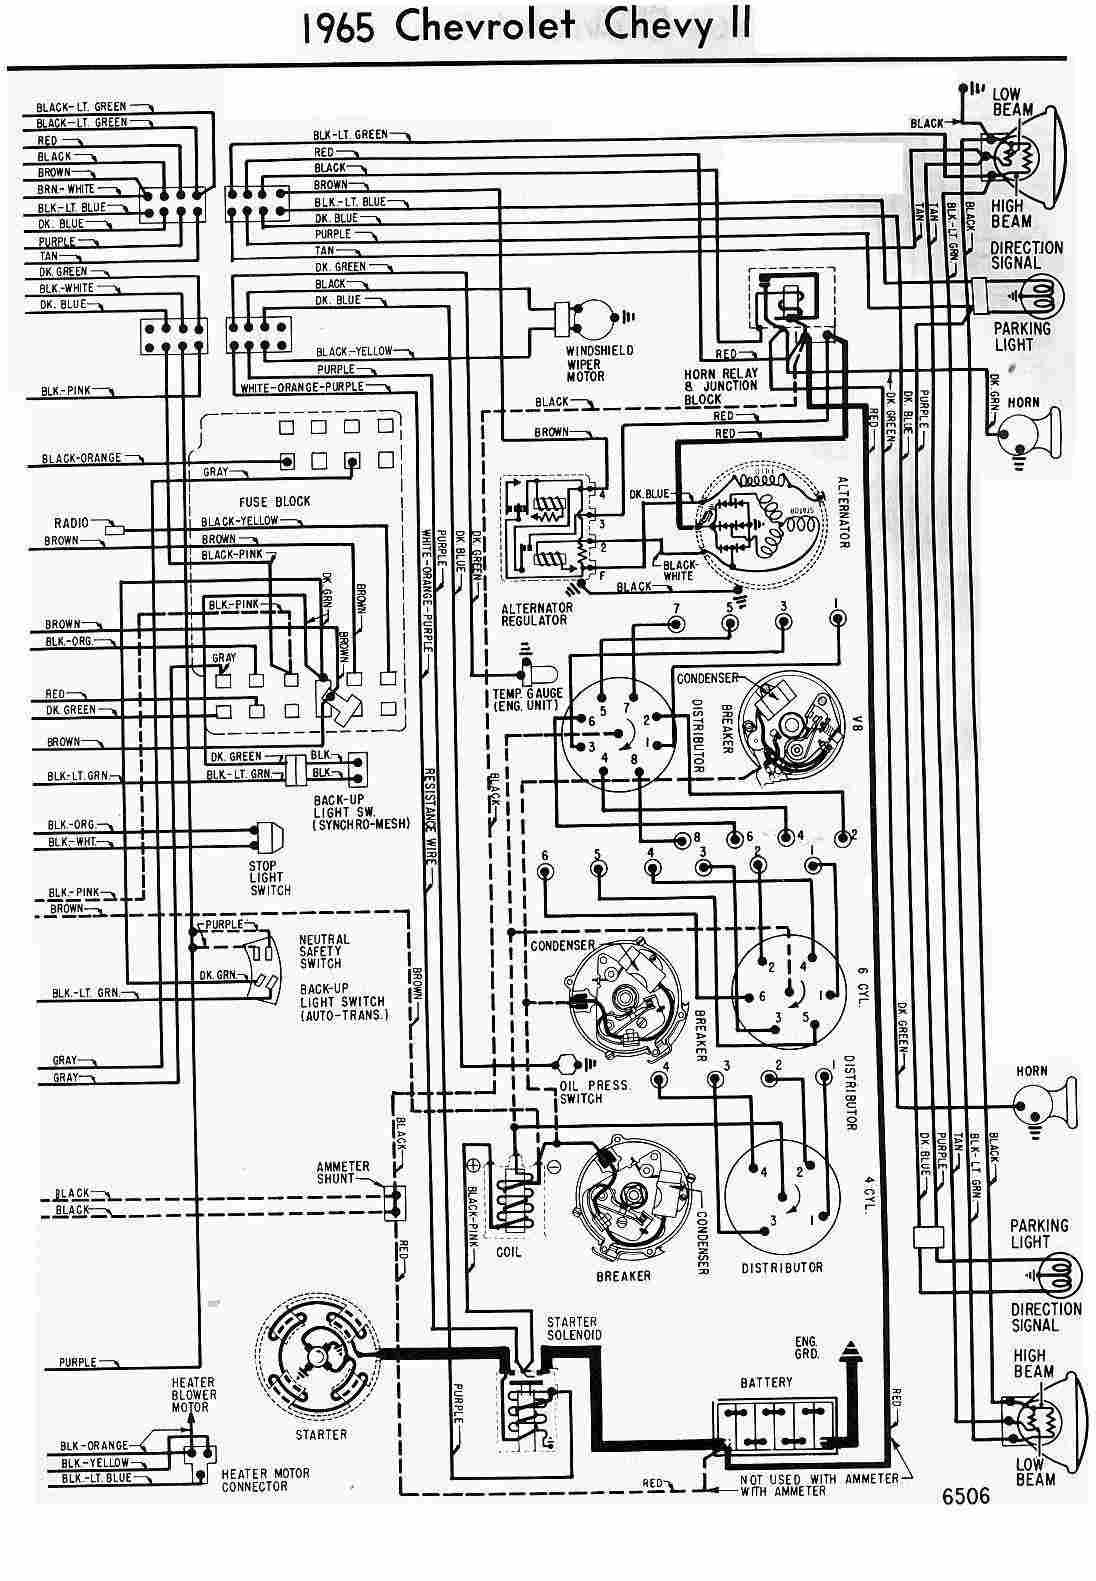 Chevrolet Car Manuals Wiring Diagrams PDF Fault Codes